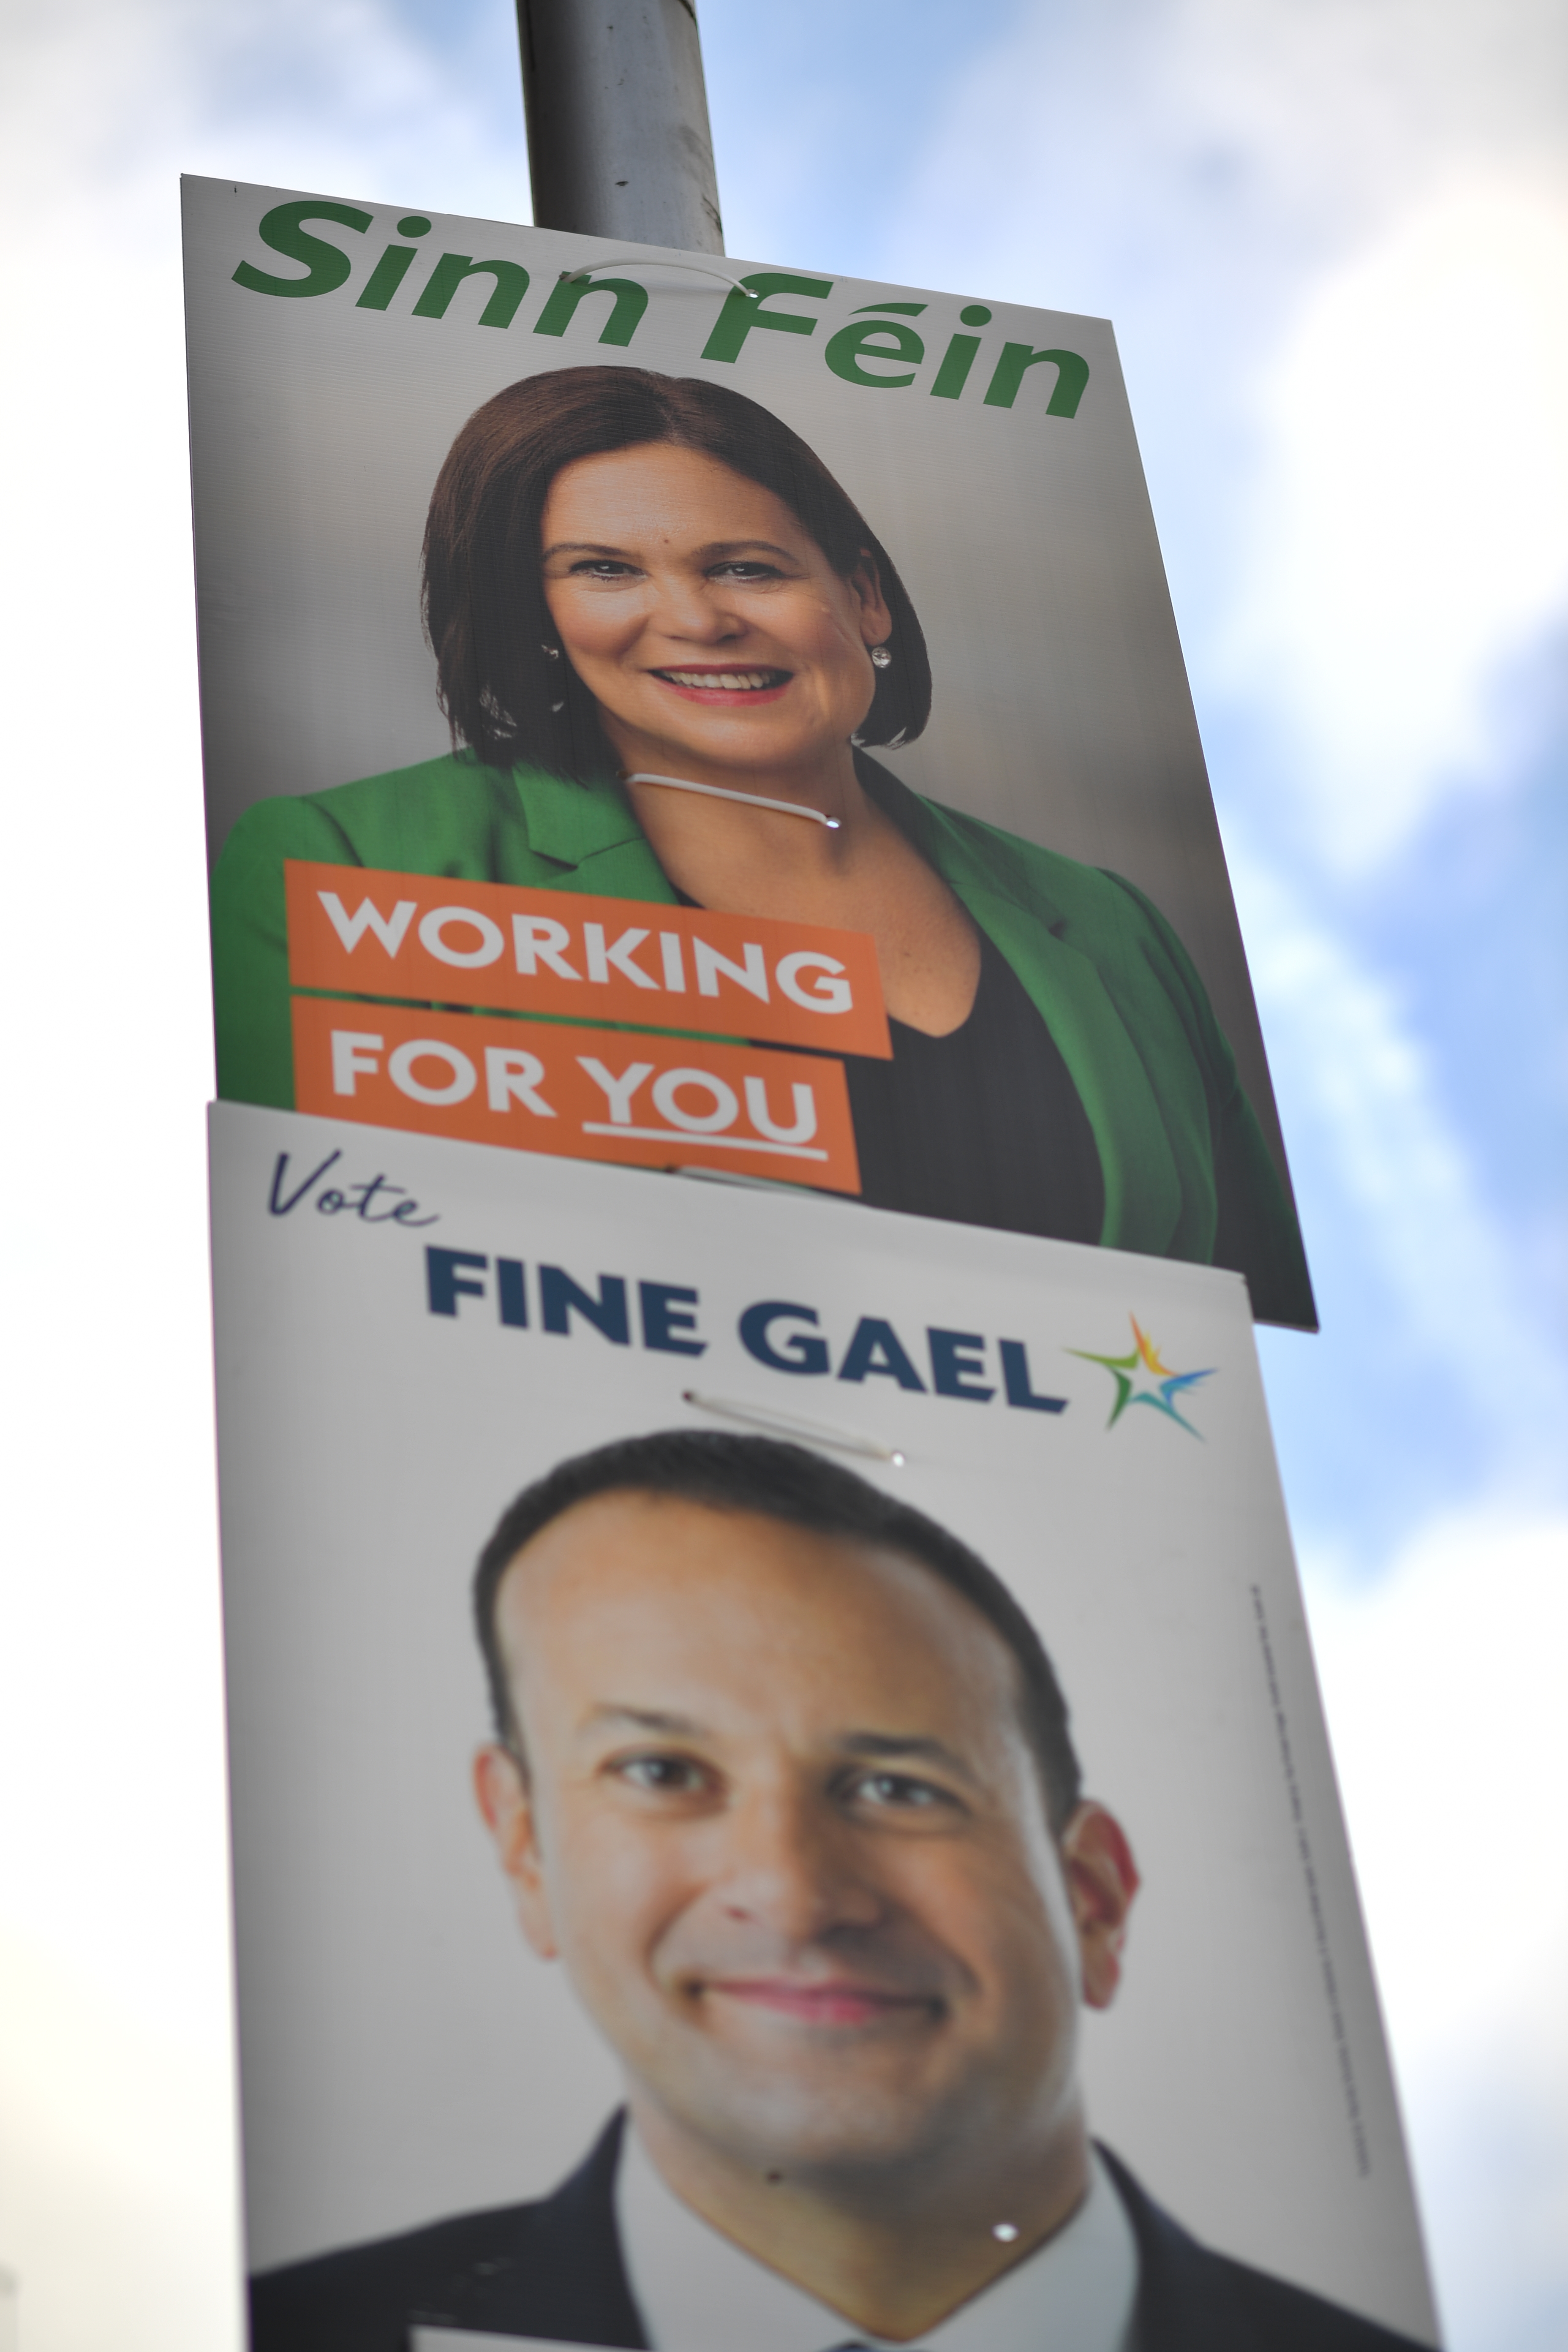 2020-02-06 14:22:22 Election posters featuring Sinn Fein President Mary Lou McDonald (top) and Ireland's Prime minister and Fine Gael leader Leo Varadkar are pictured on Grattan Bridge in Dublin on February 6, 2020, ahead of the February 8 General Election.  Ireland will go to the polls on Fenruary 8, in an early general election, Prime Minister Leo Varadkar said, seeking to capitalise on his part in brokering the Brexit deal. Ben STANSALL / AFP